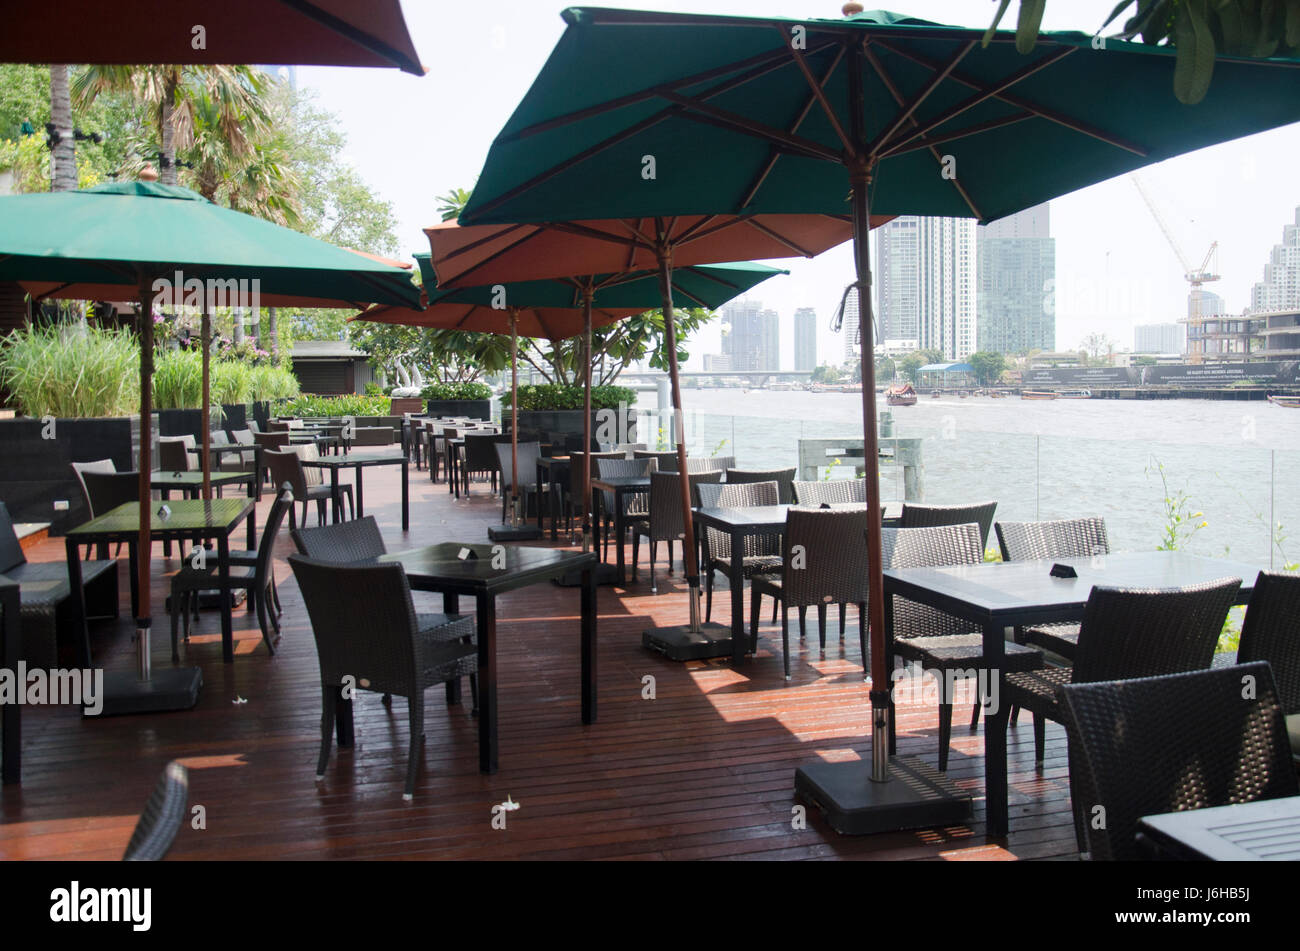 Decorative modern furniture of restaurant at outdoor and chao phraya riverside at hotel on february 30 2017 in bangkok thailand